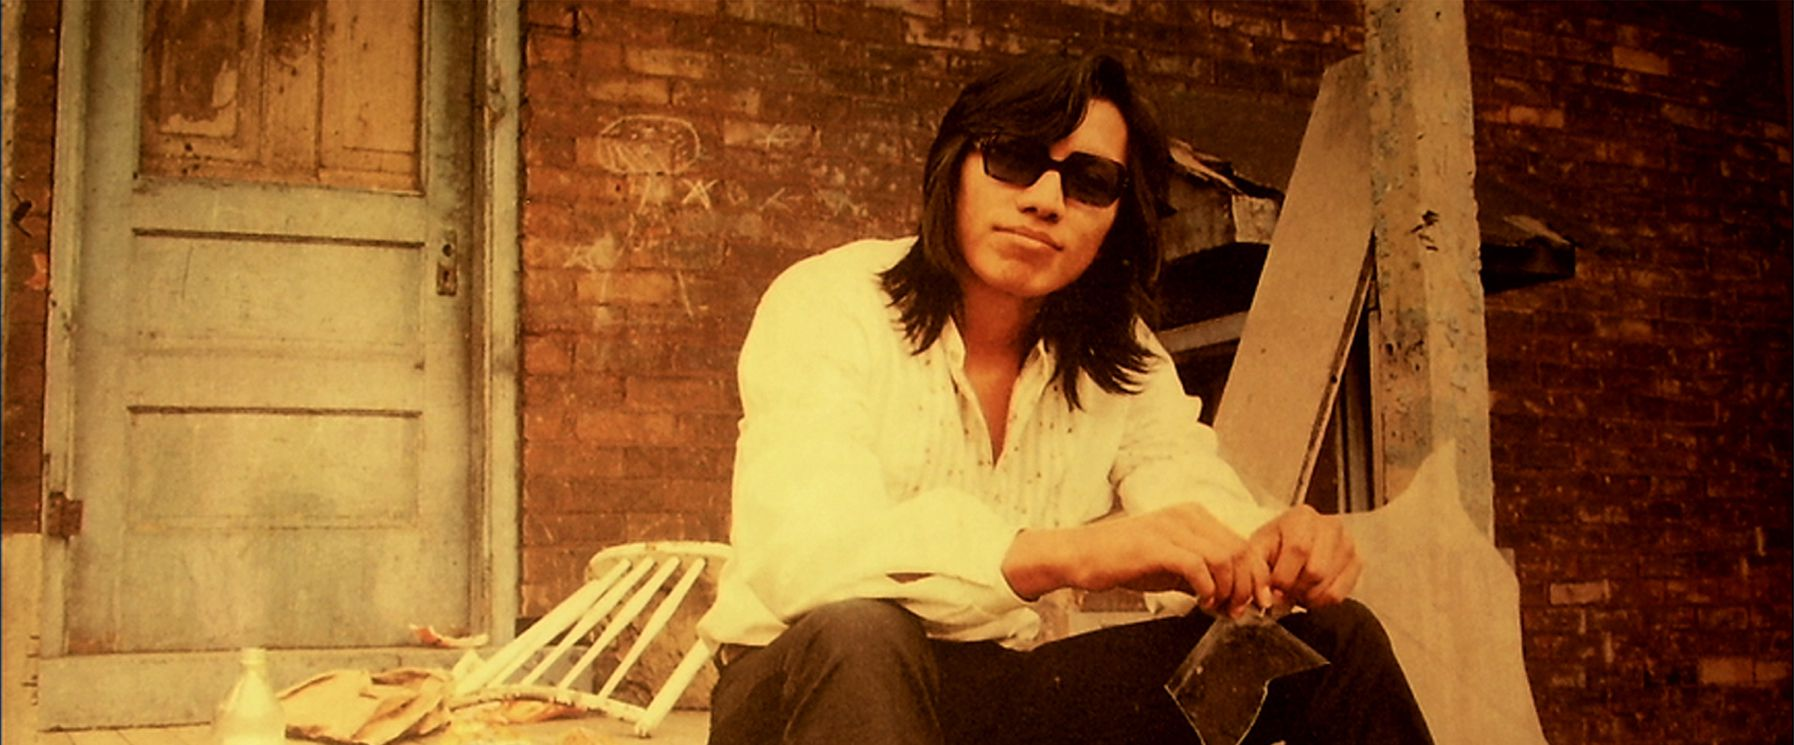 An image from Searching for Sugar Man